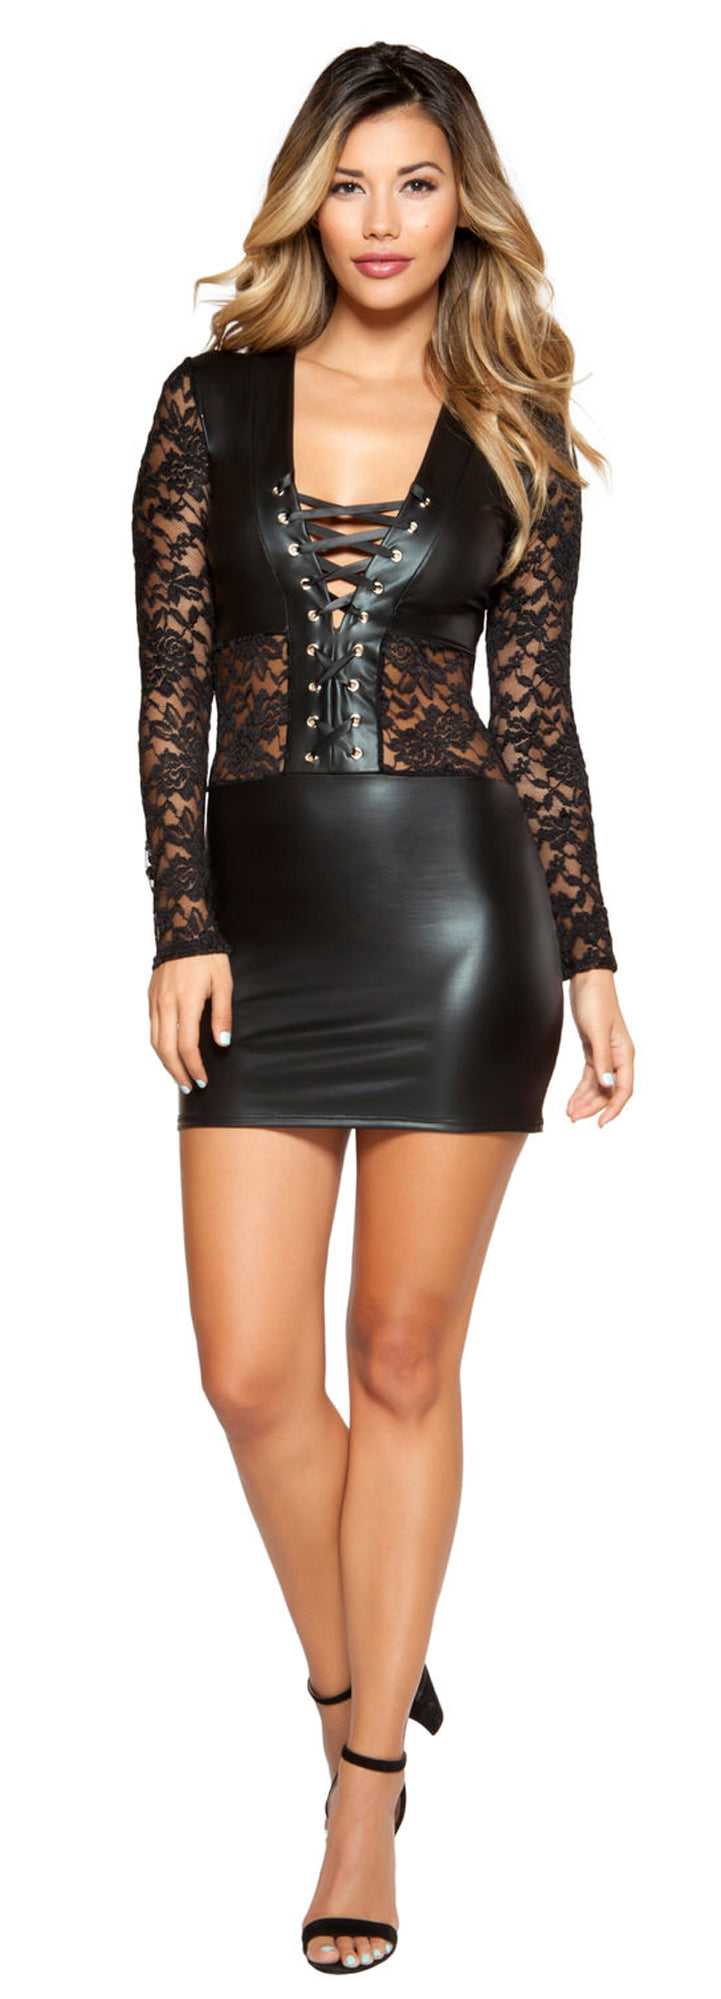 RM-3341 Lace and vinyl black mini dress front